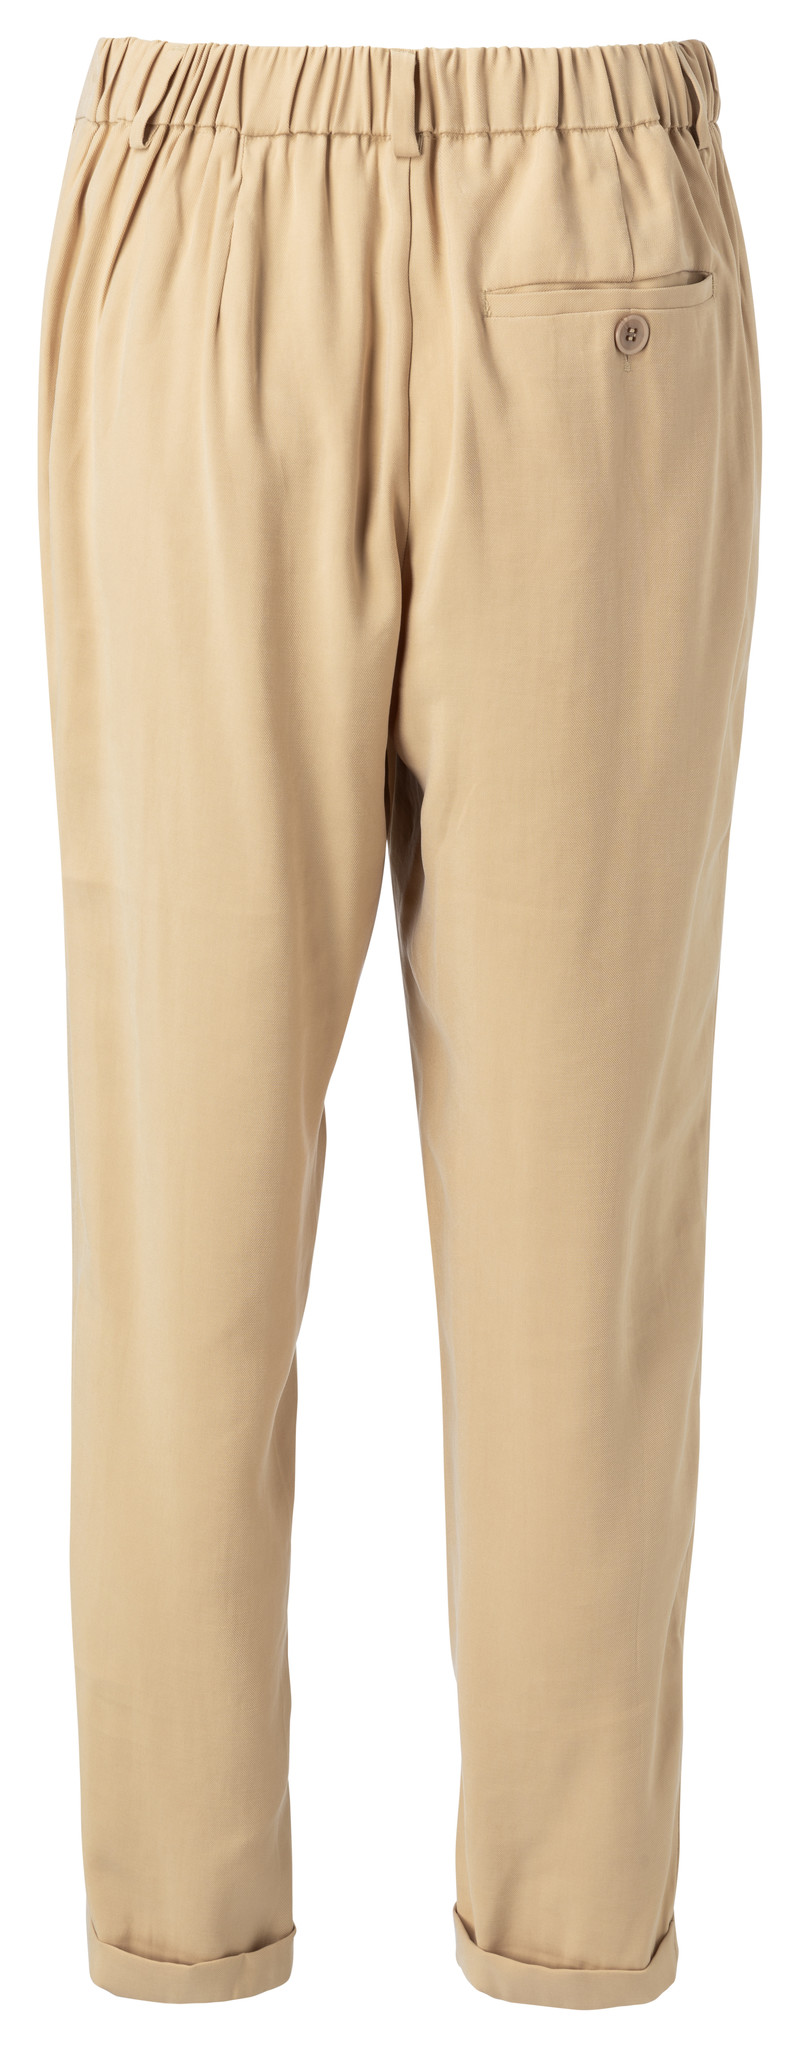 yaya Relaxed fit trousers 121156-014-2